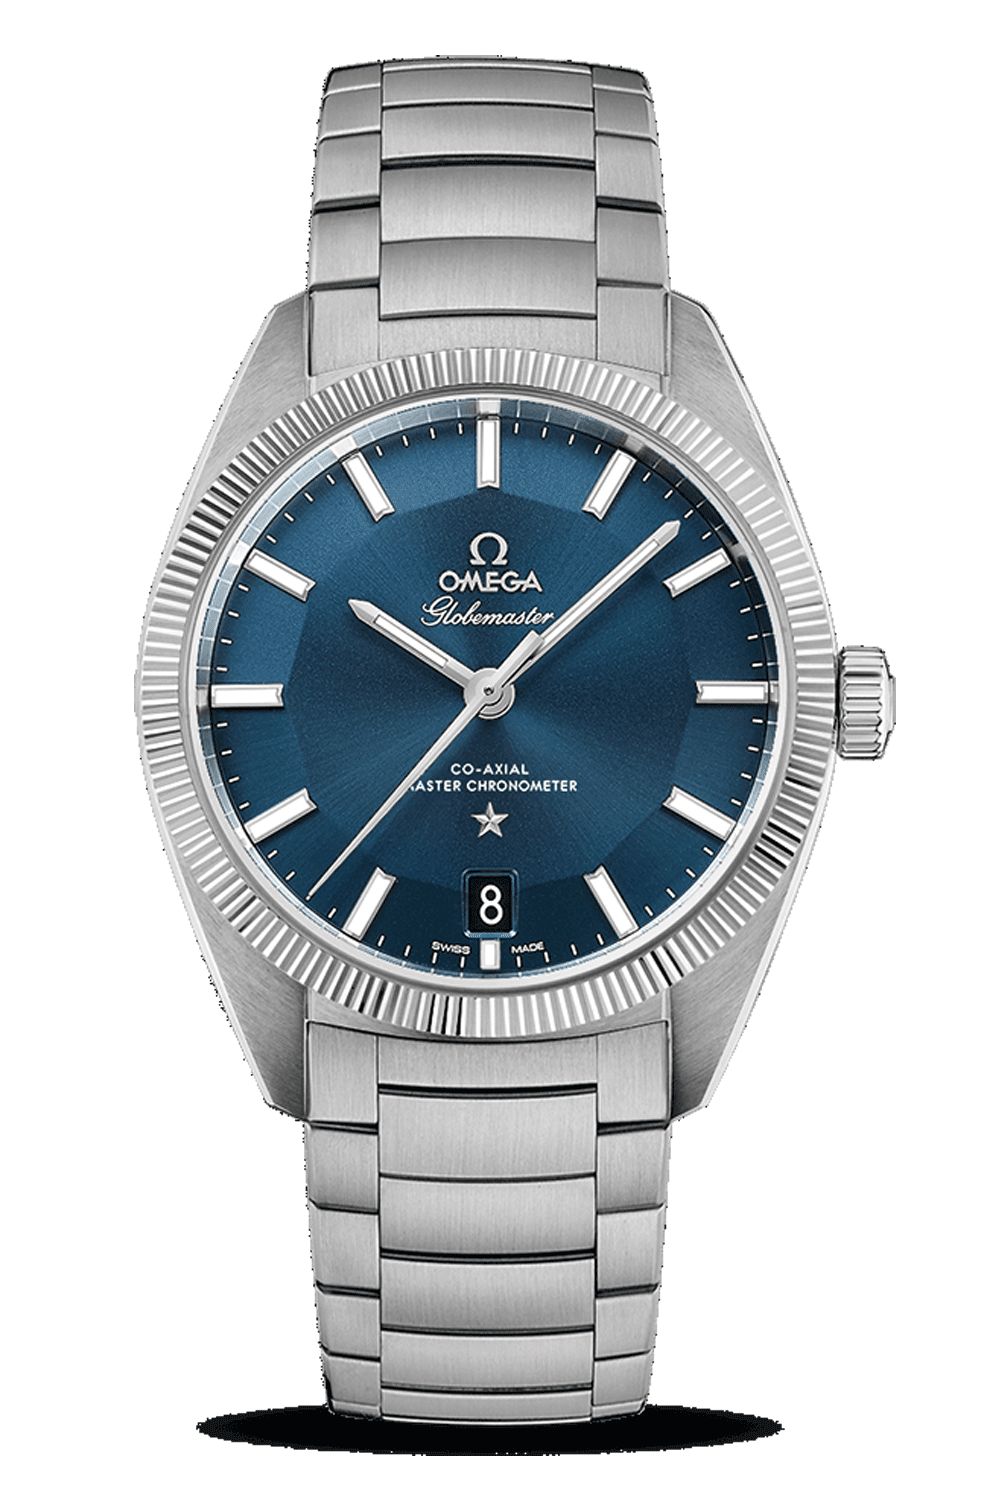 OMEGA Constellation Globemaster Omega Co-Axial Master Chronometer 39mm 13030392103001